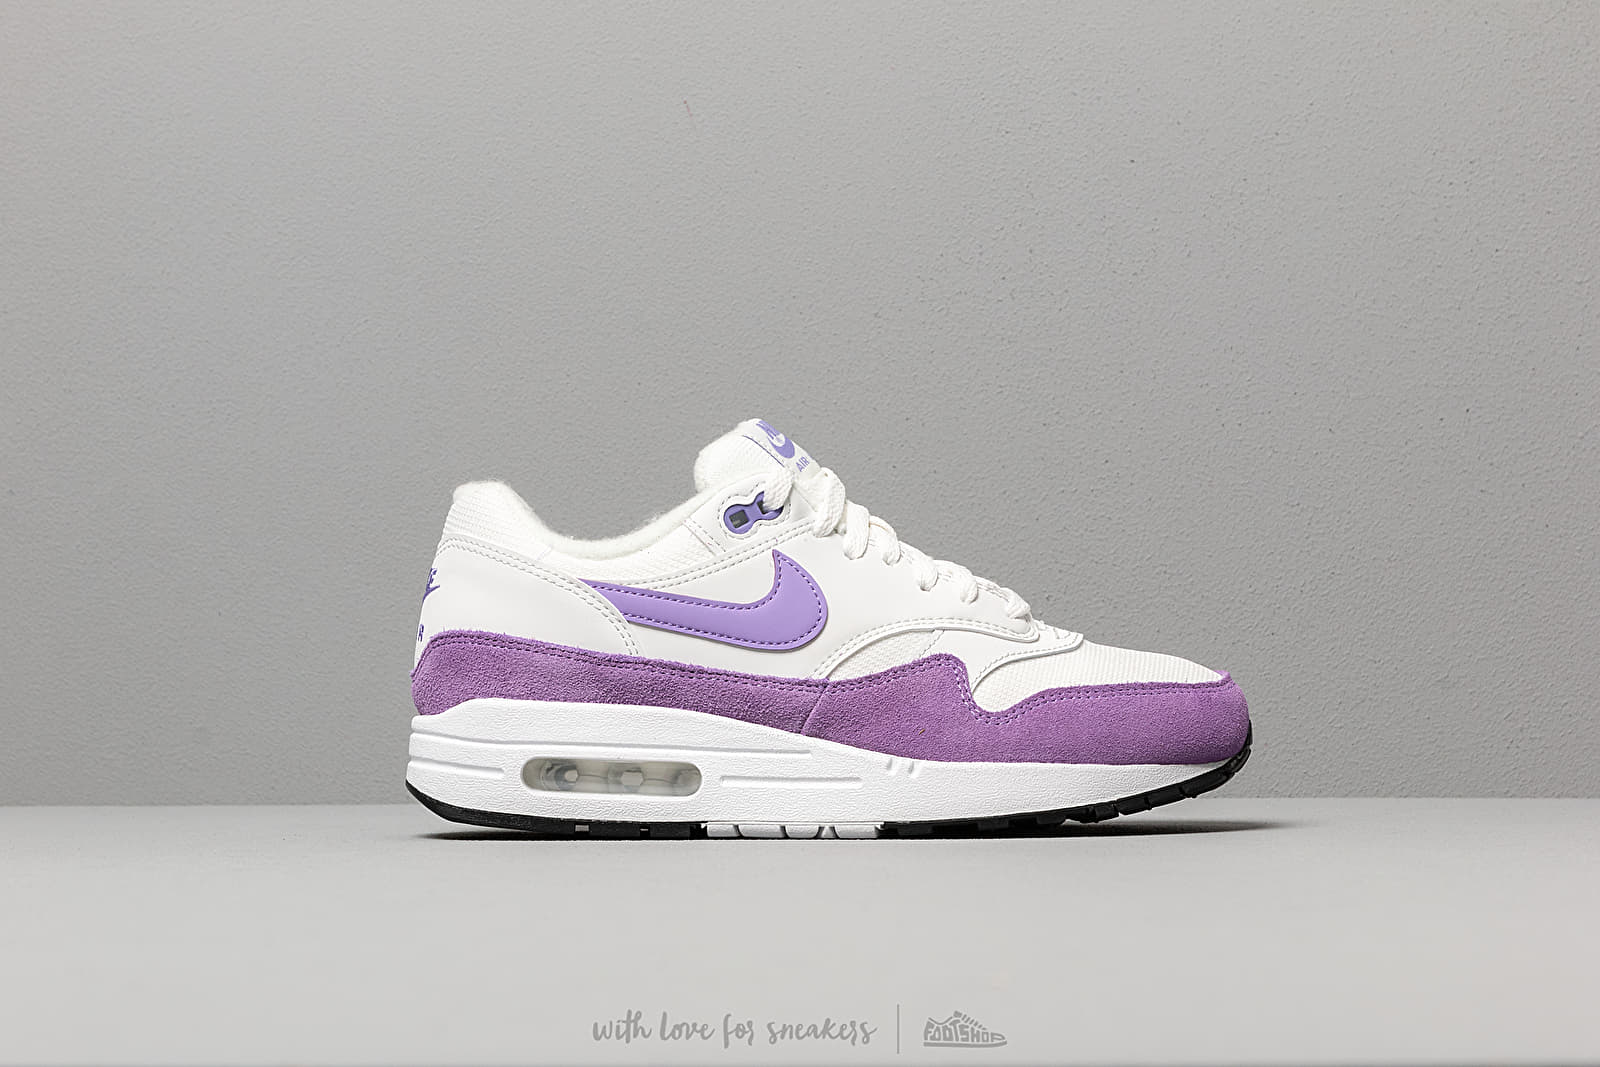 c816208492 Nike Wmns Air Max 1 Summit White/ Atomic Violet-Black at a great price